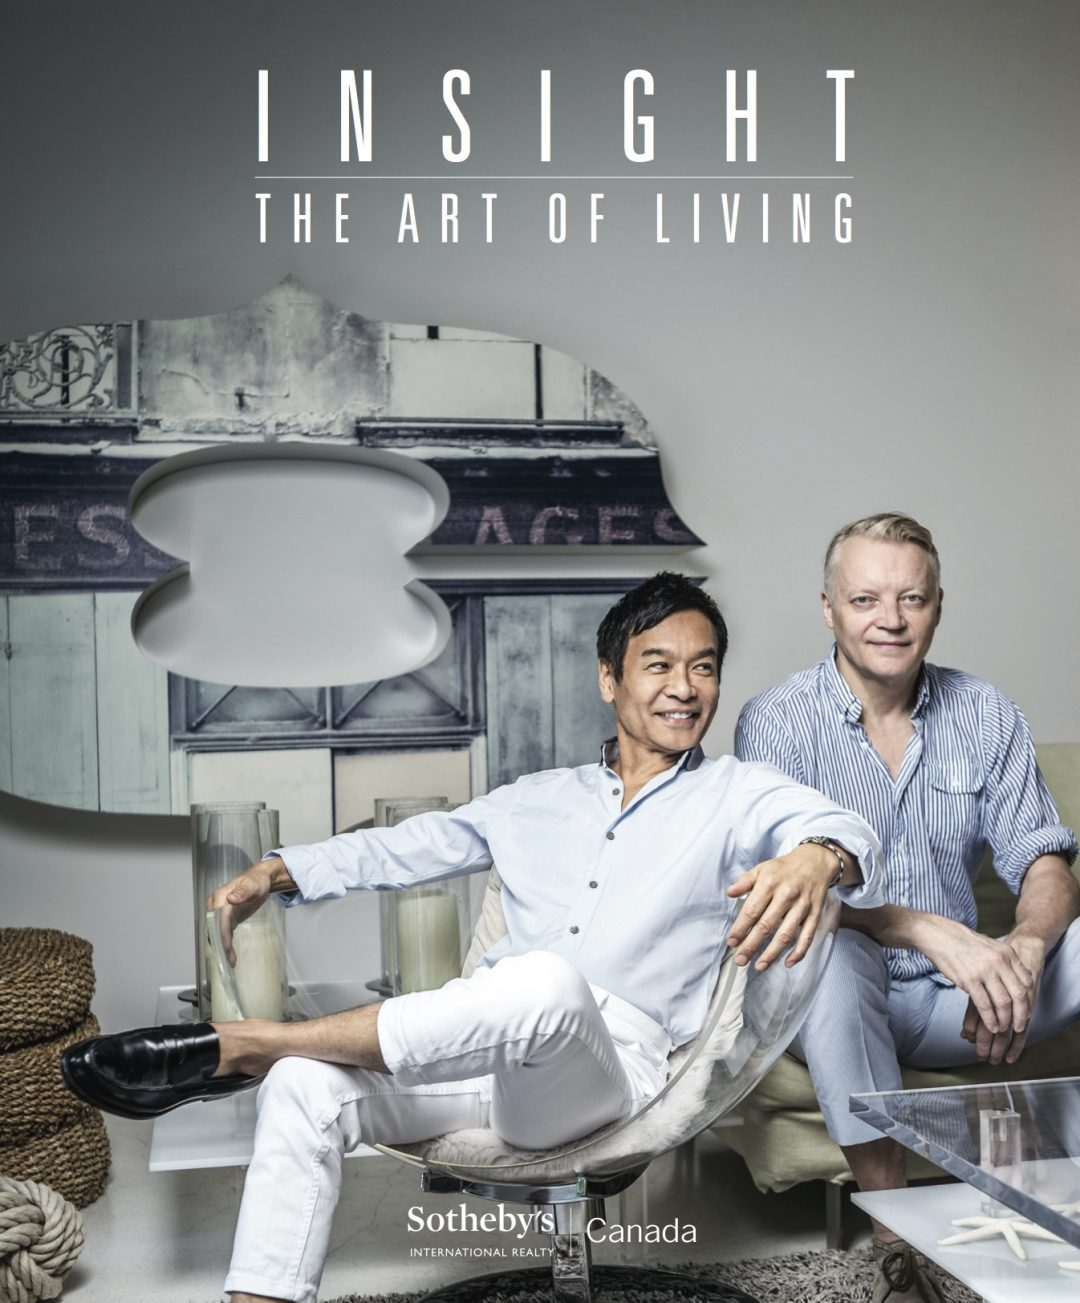 Insight Magazine – The Art of Living